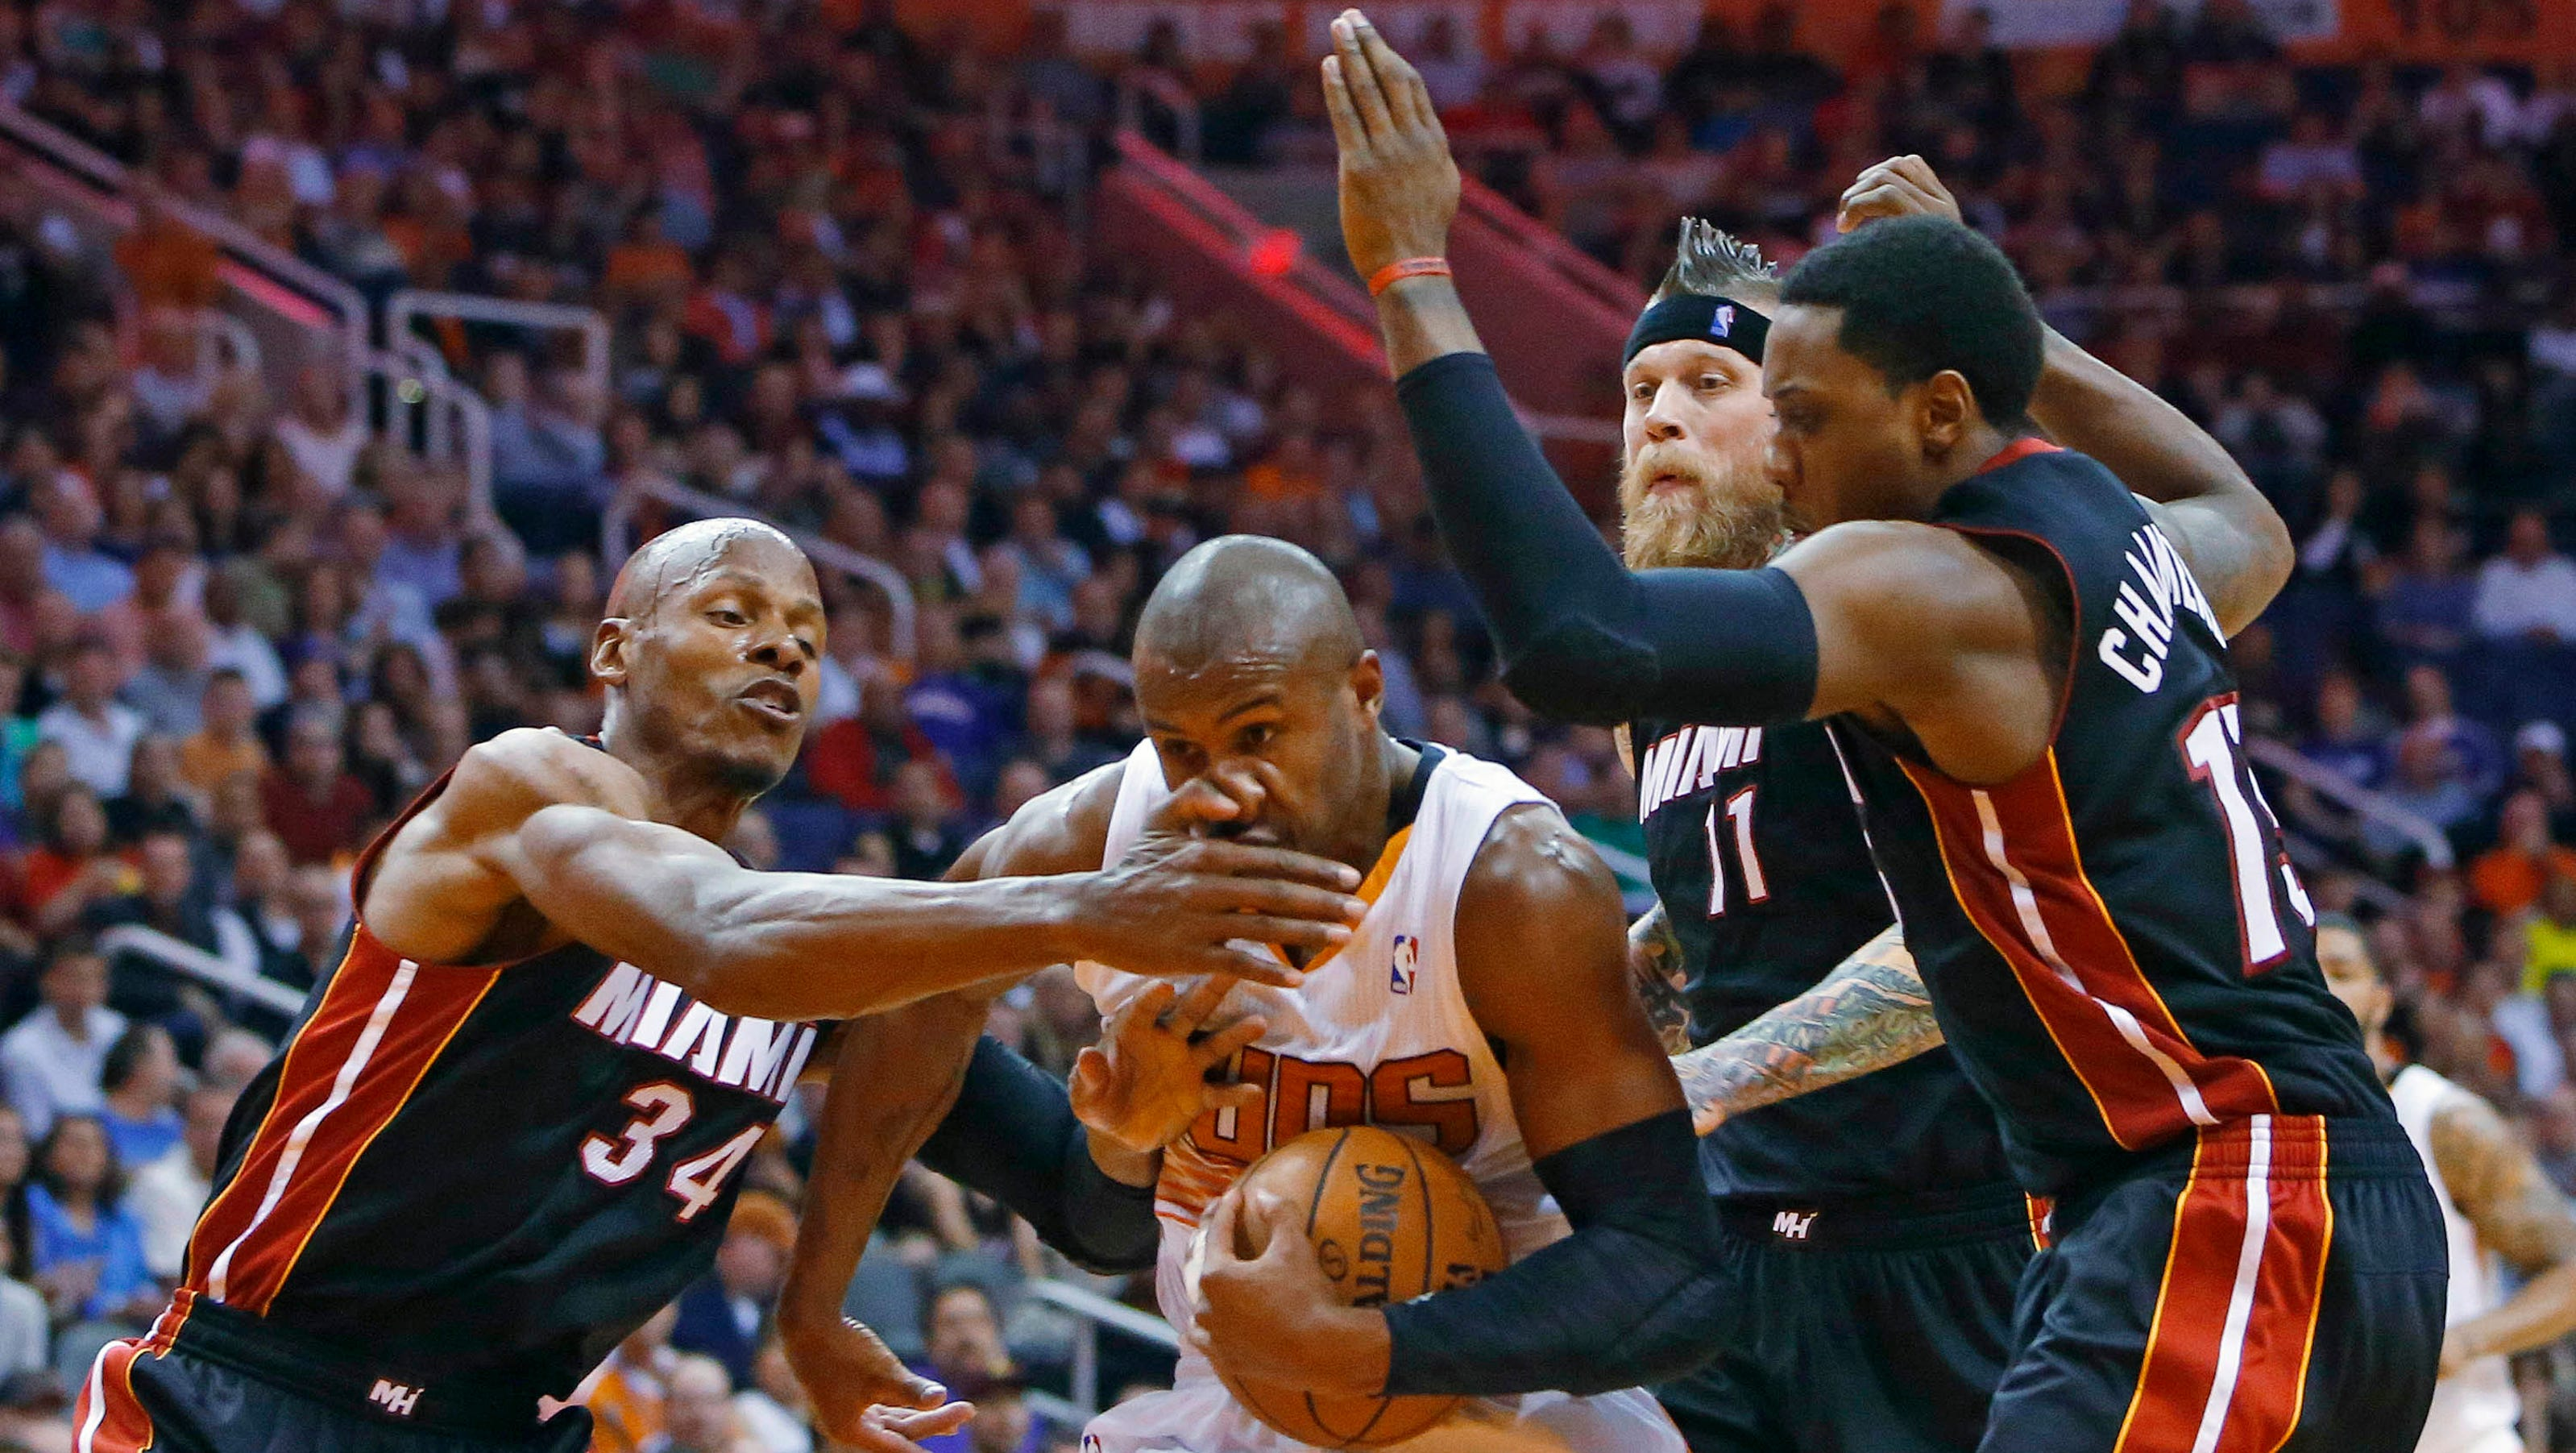 James, Heat handle Suns without Wade